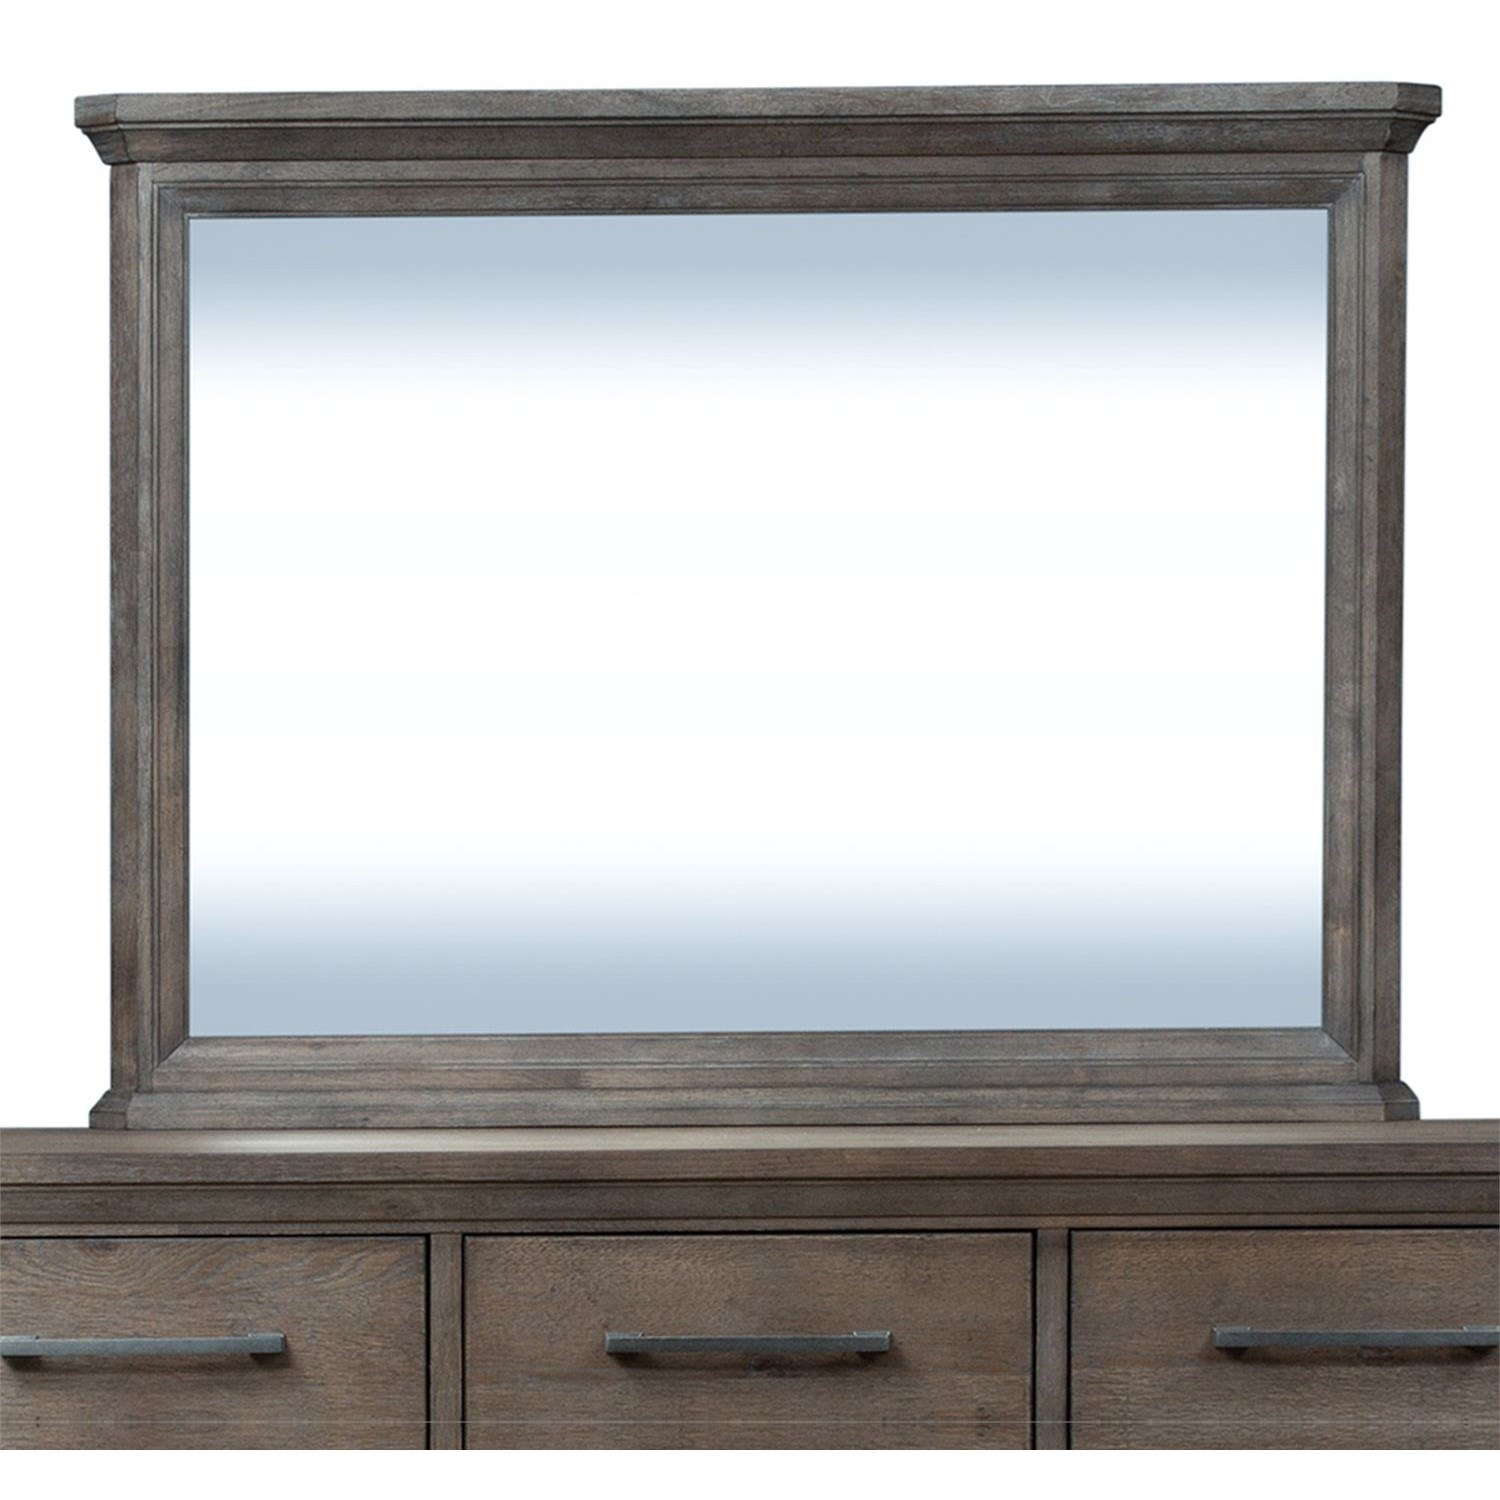 Artisan Prairie Dresser Mirror by Liberty Furniture at Catalog Outlet